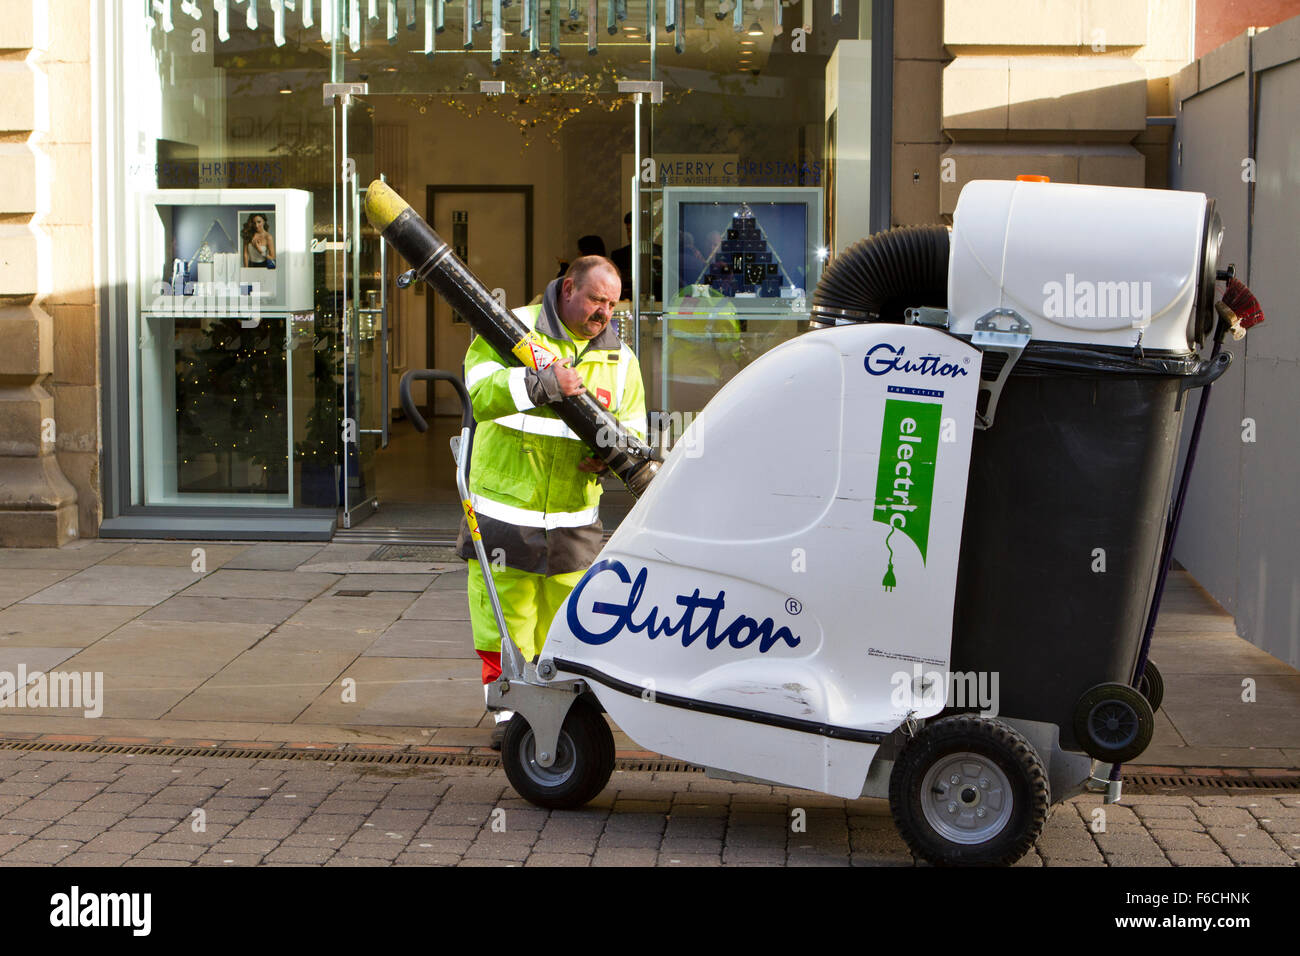 Street Cleaner Uk Stock Photos Amp Street Cleaner Uk Stock